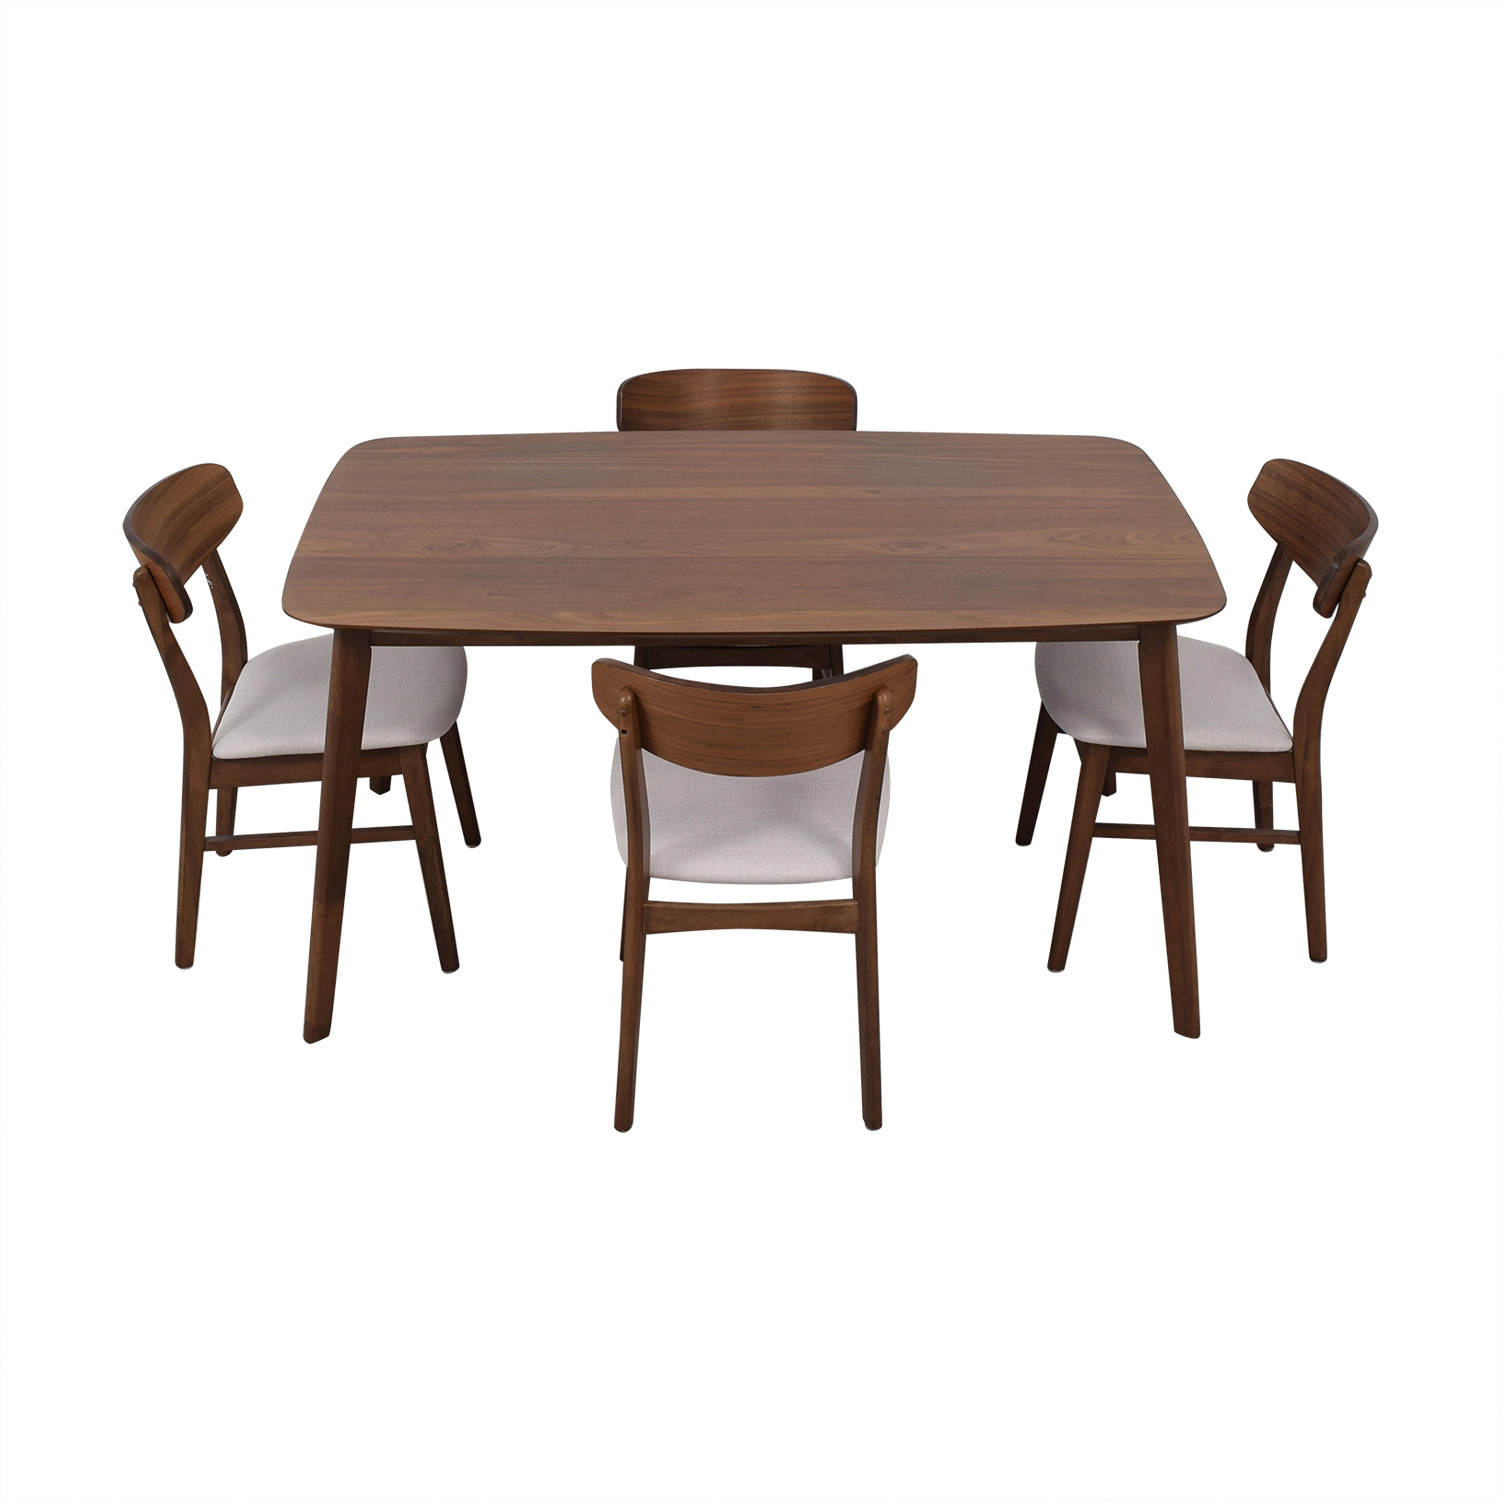 Miraculous 49 Off Allmodern All Modern Upholstered Dining Set Tables Ocoug Best Dining Table And Chair Ideas Images Ocougorg